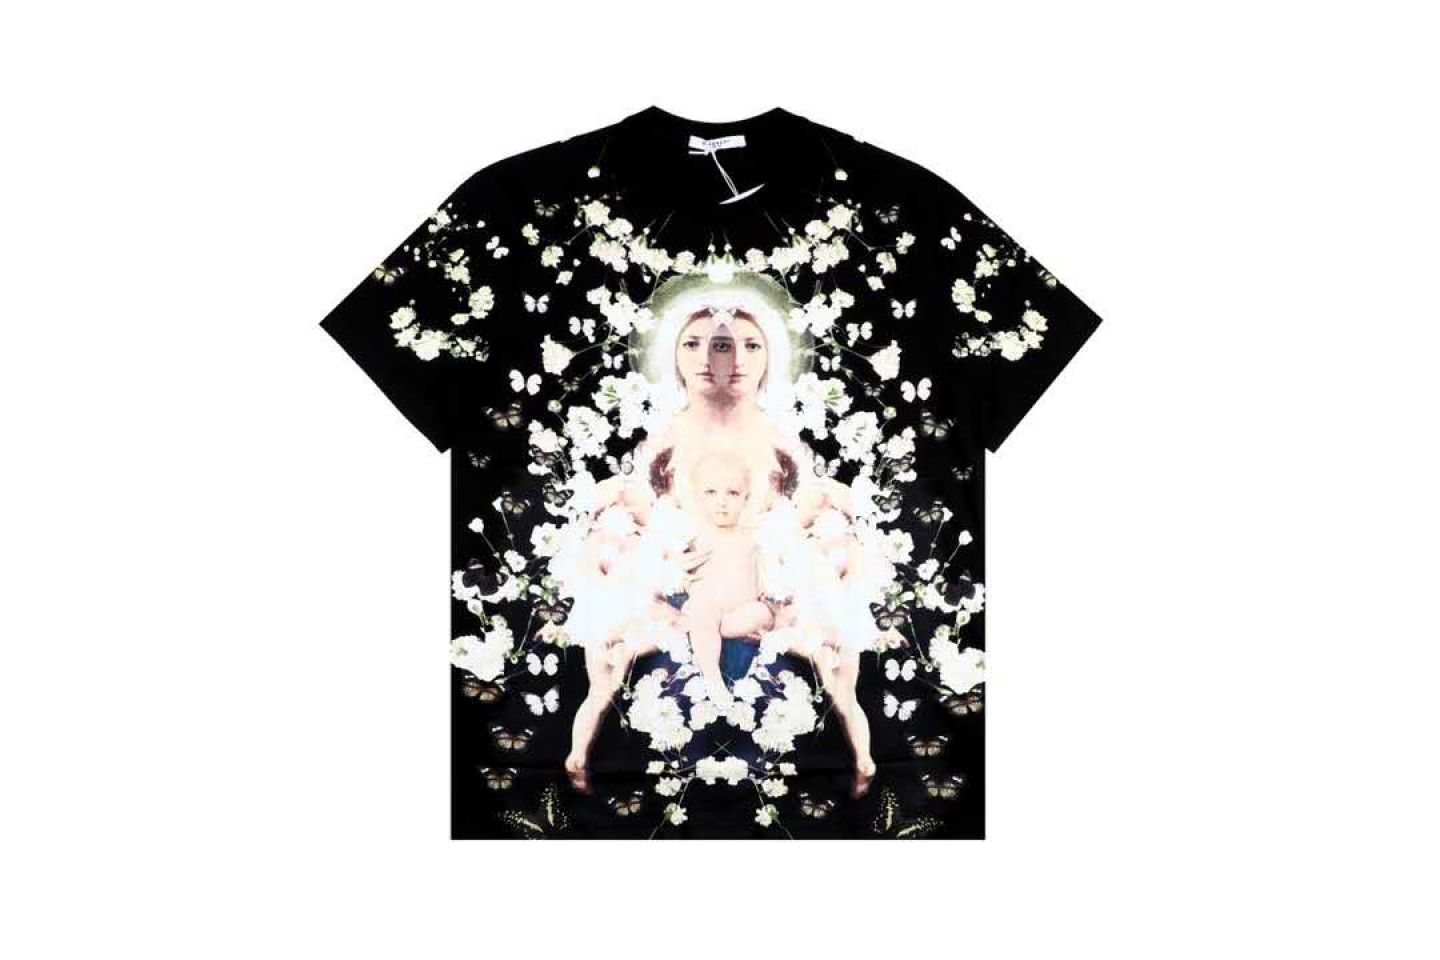 Shirt Givenchy classic Mother Maria short-sleeved T-shirt 1 givenchy_classic_mother_maria_short_sleeved_t_shirt__1